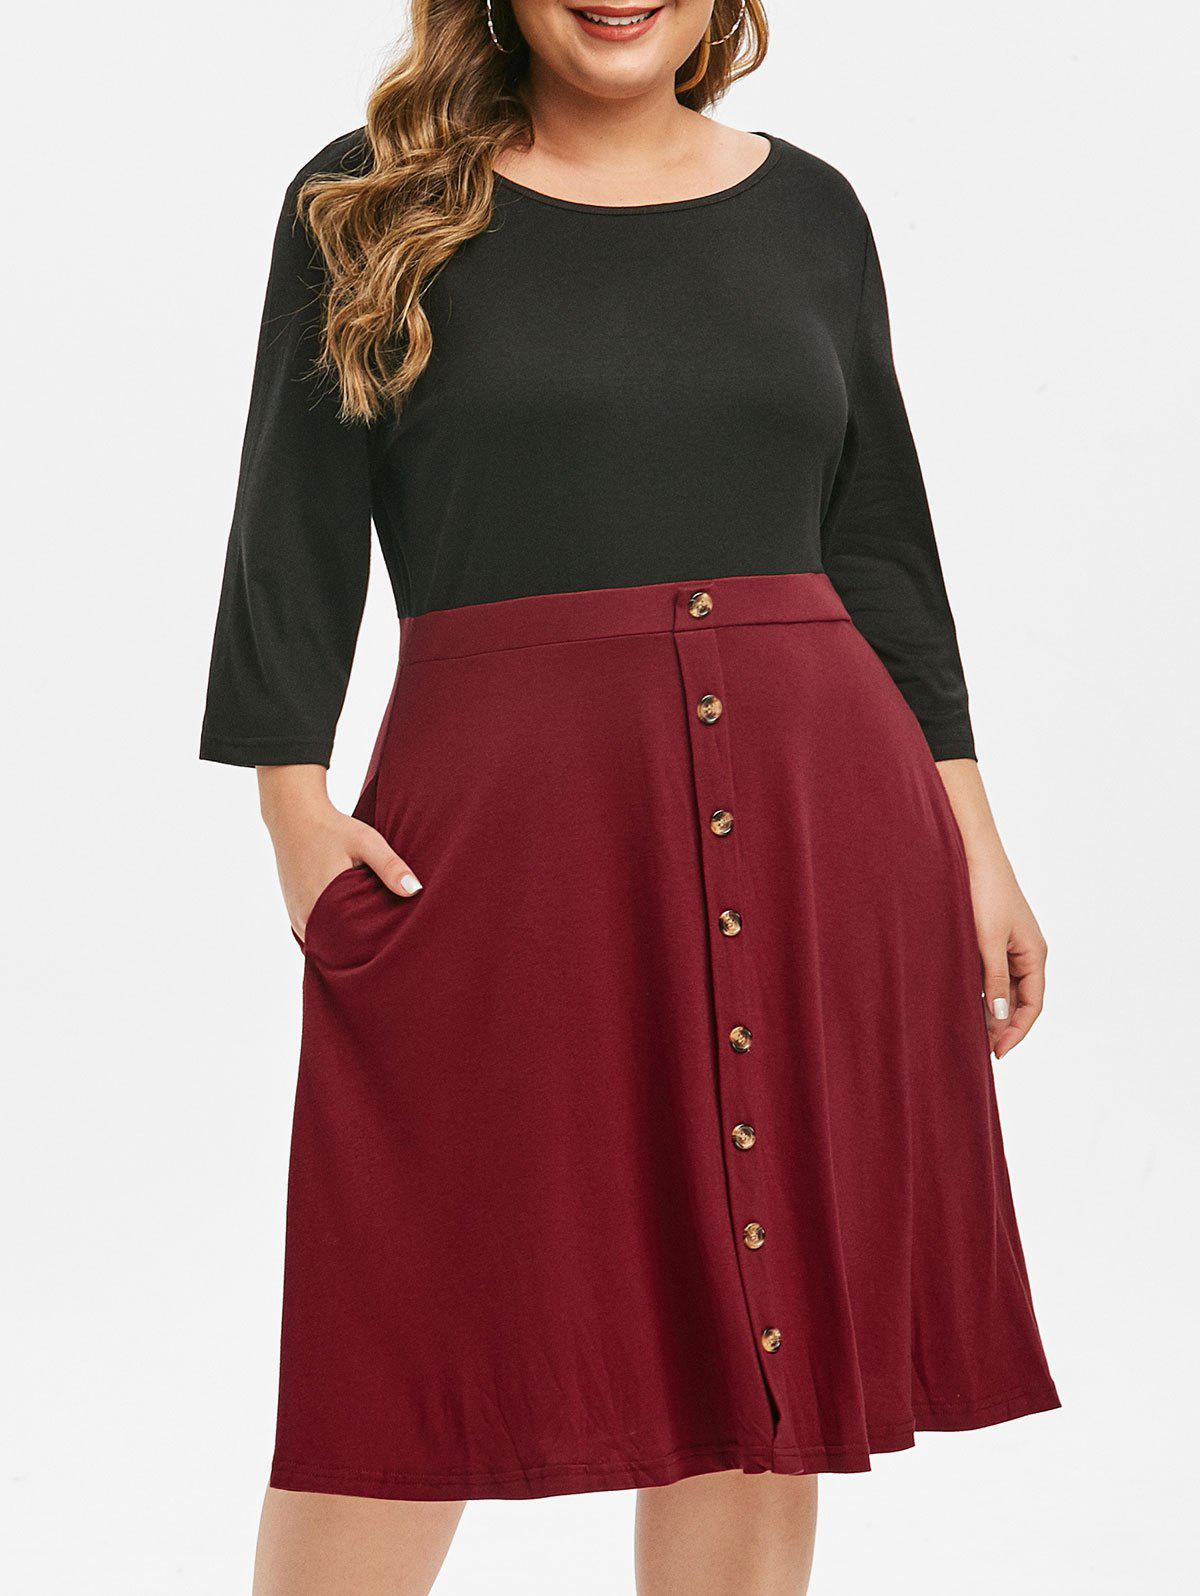 Trendy Plus Size Two Tone Button Embellished Dress